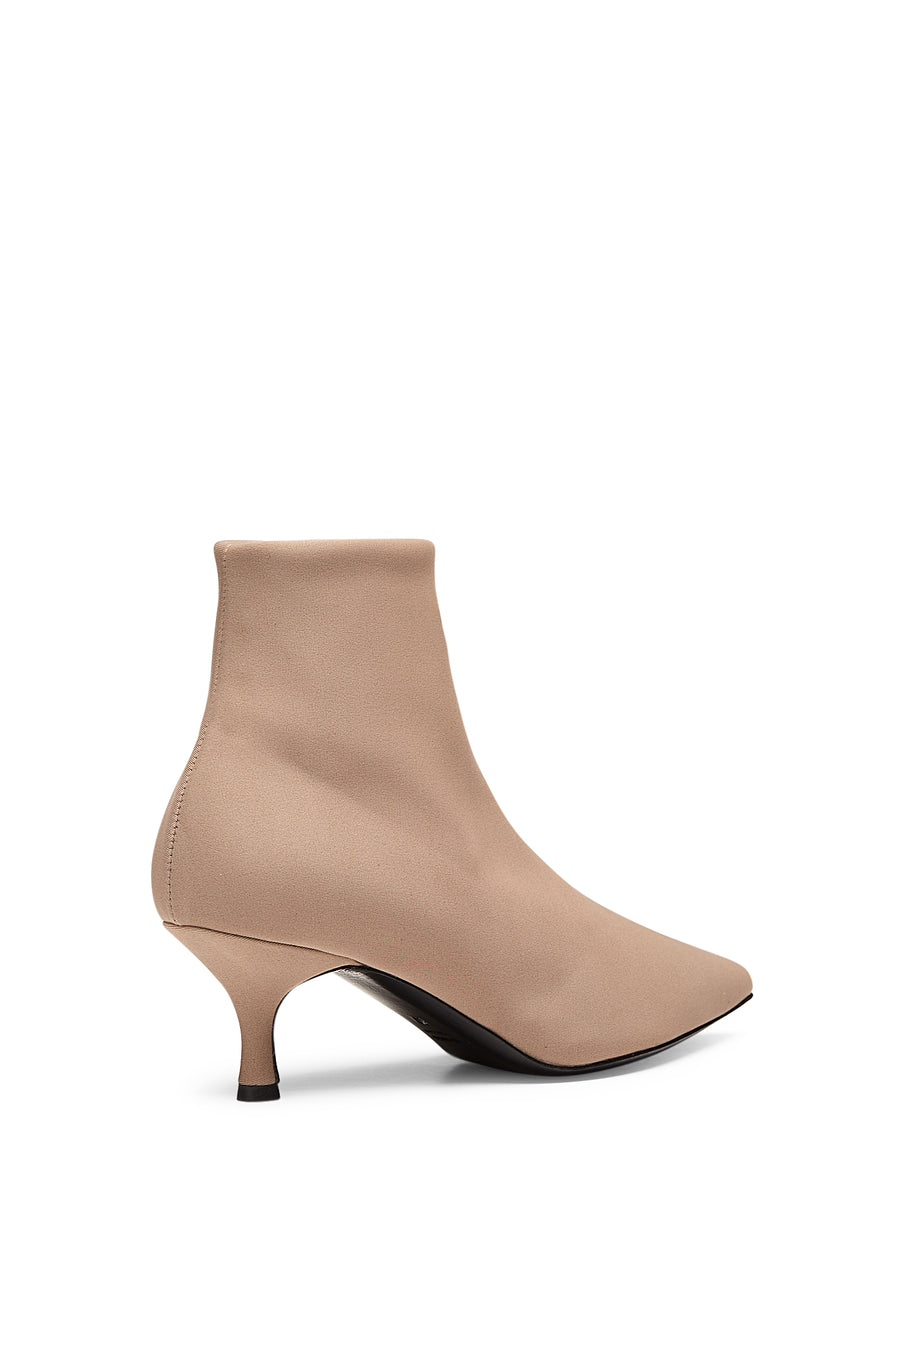 SCUBA ANKLE BOOT 6 TRENCH, TRENCH color